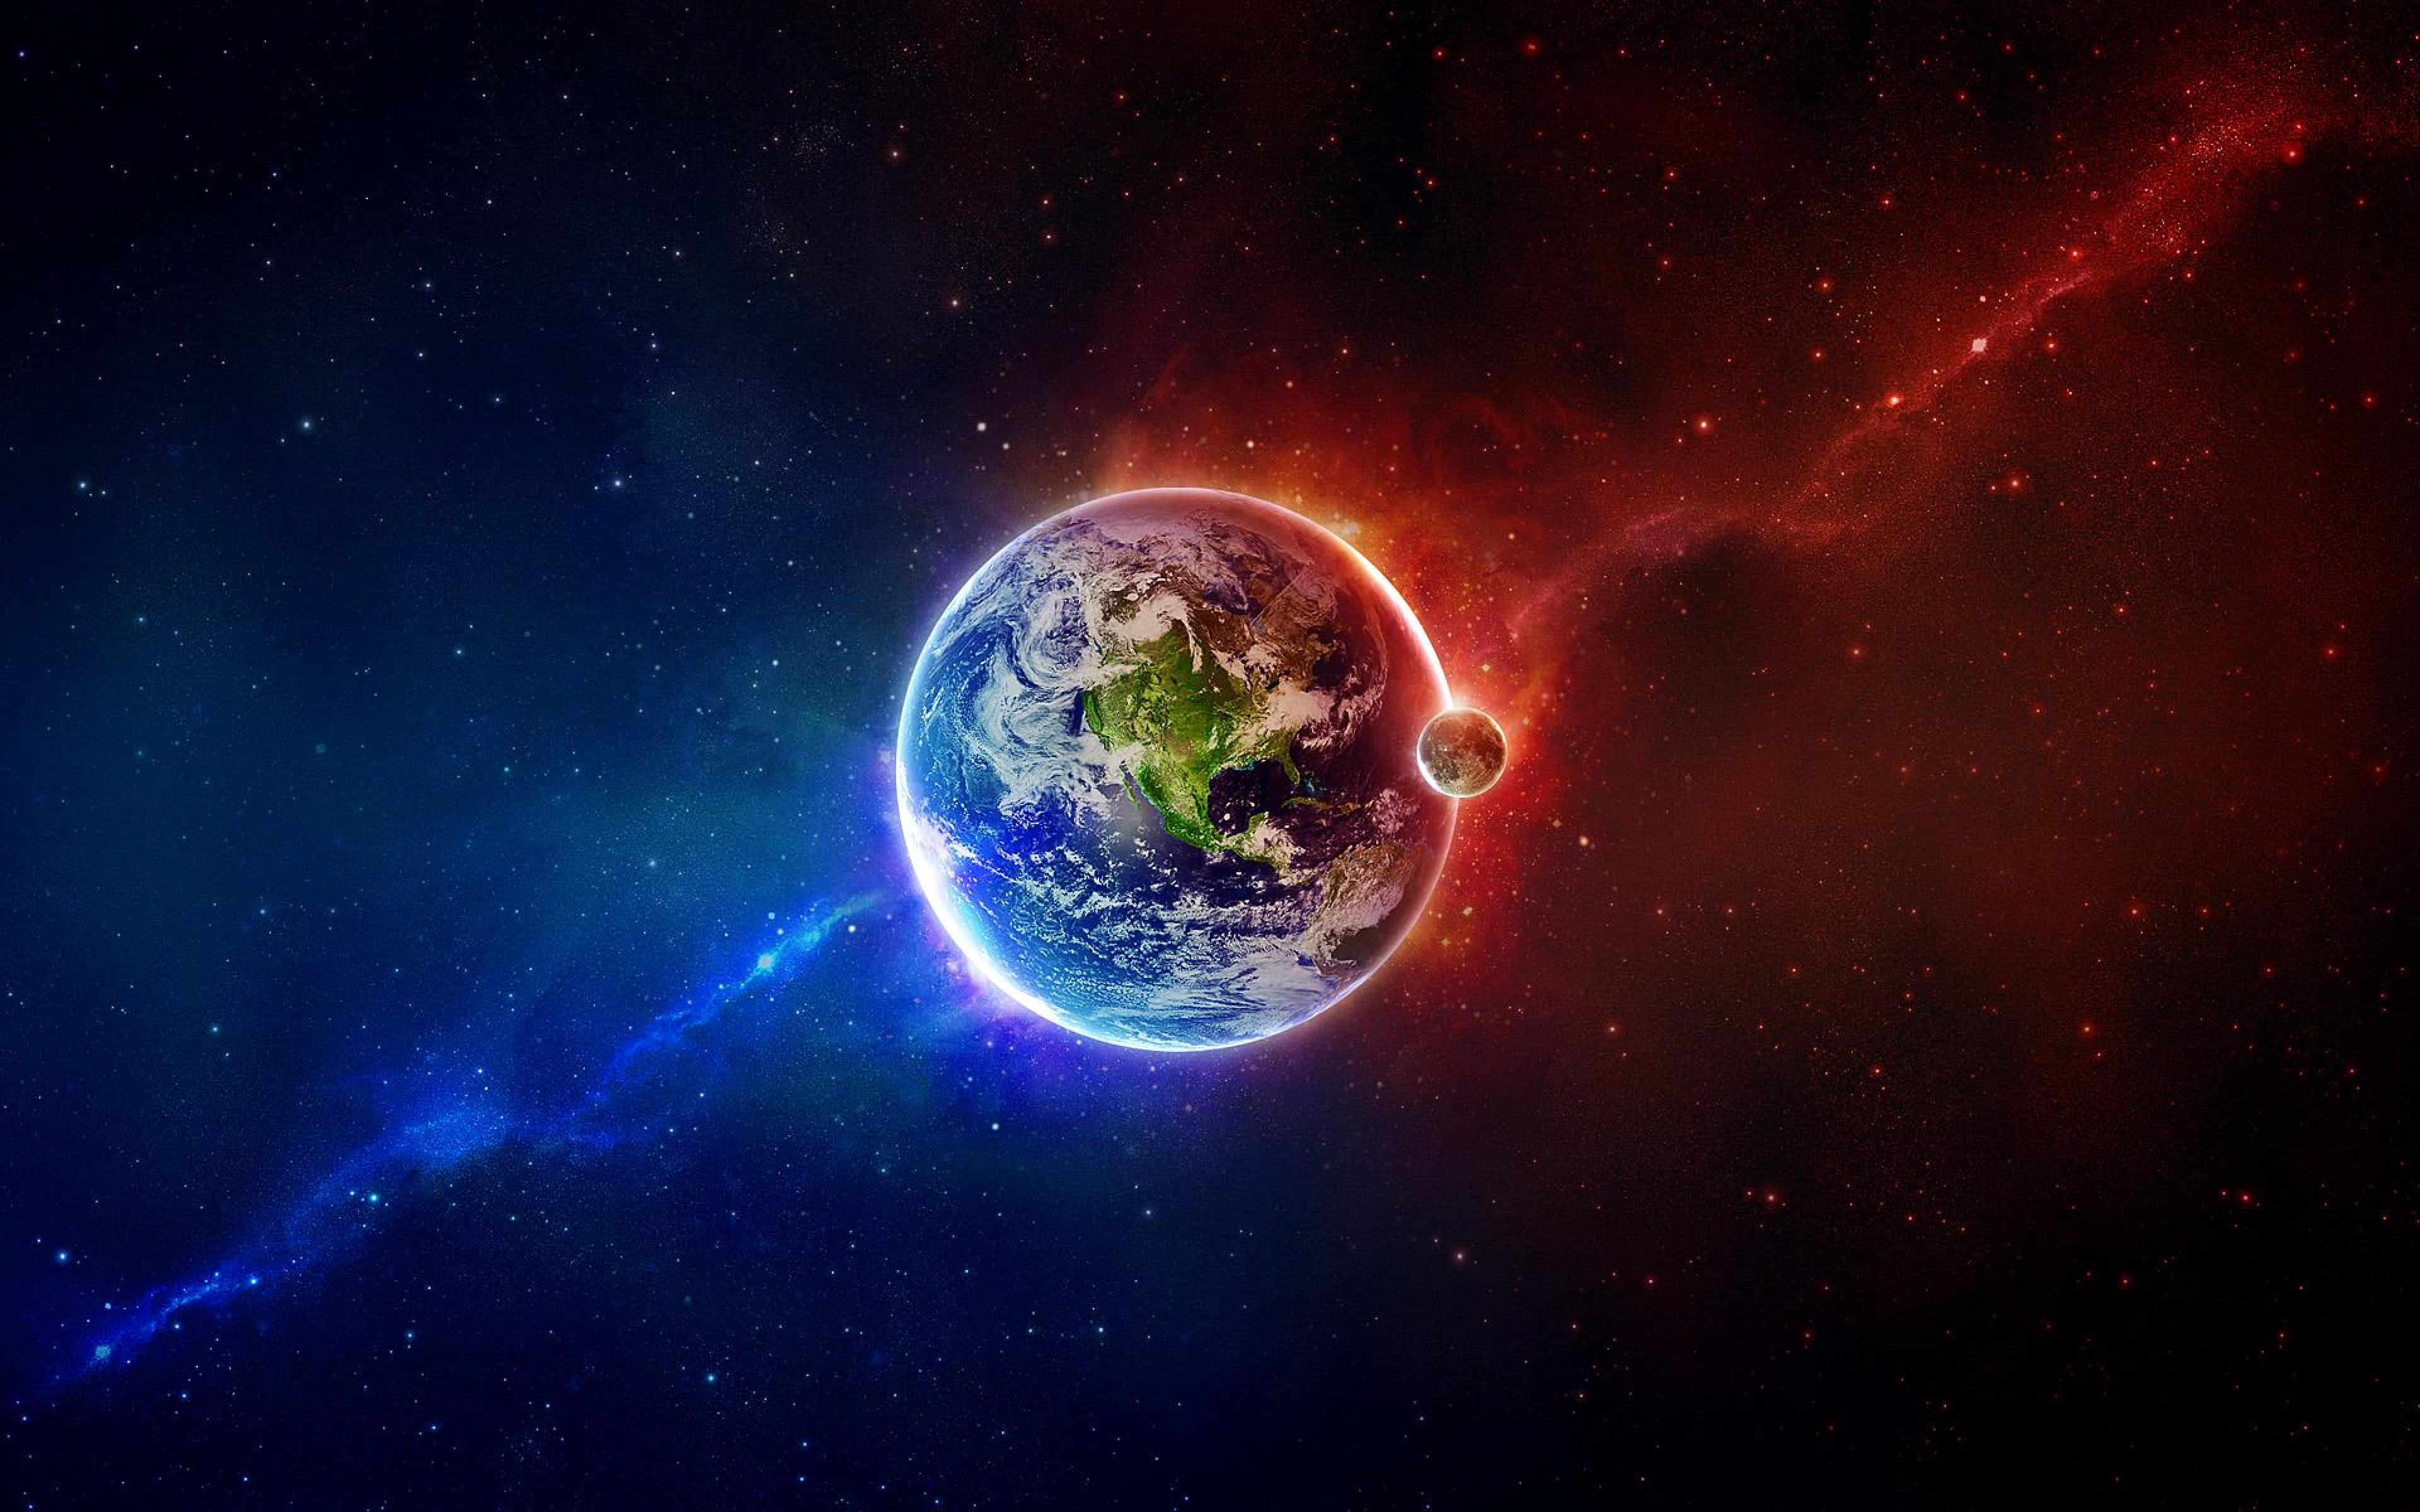 Earth from outer space Ultra HD Wallpaper   Imgur 3840x2400